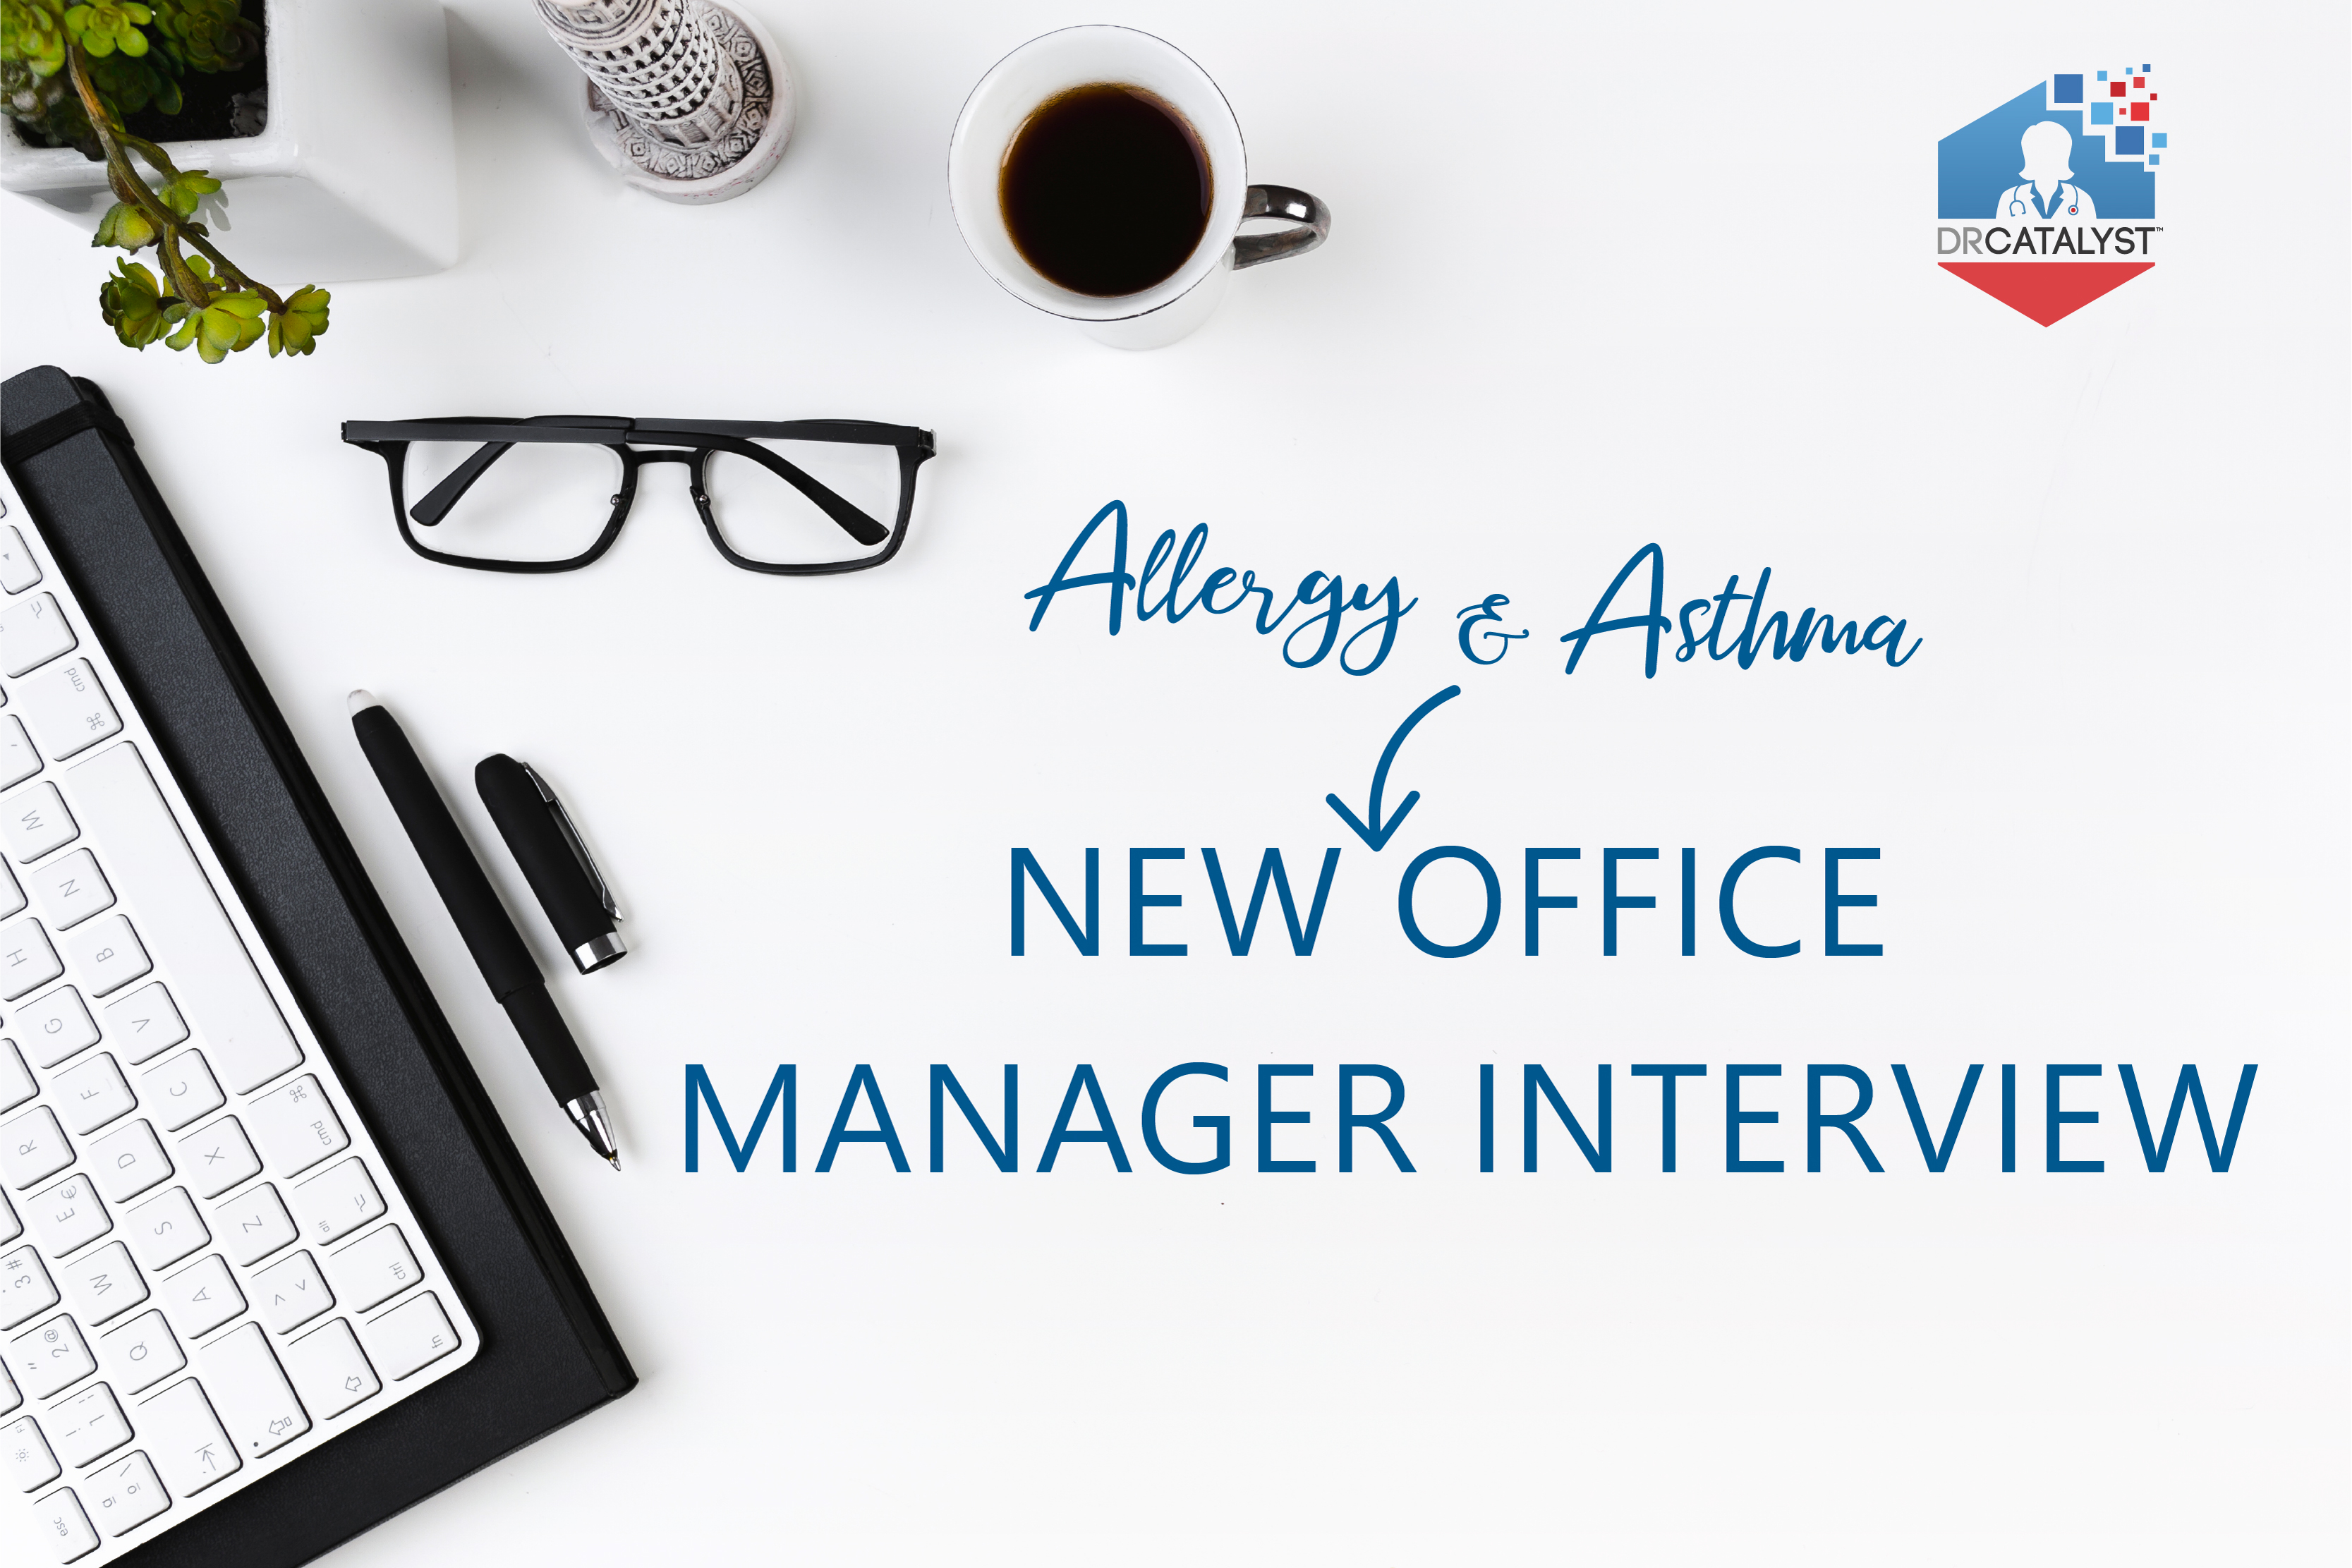 new-office-manager-asthma-allergy